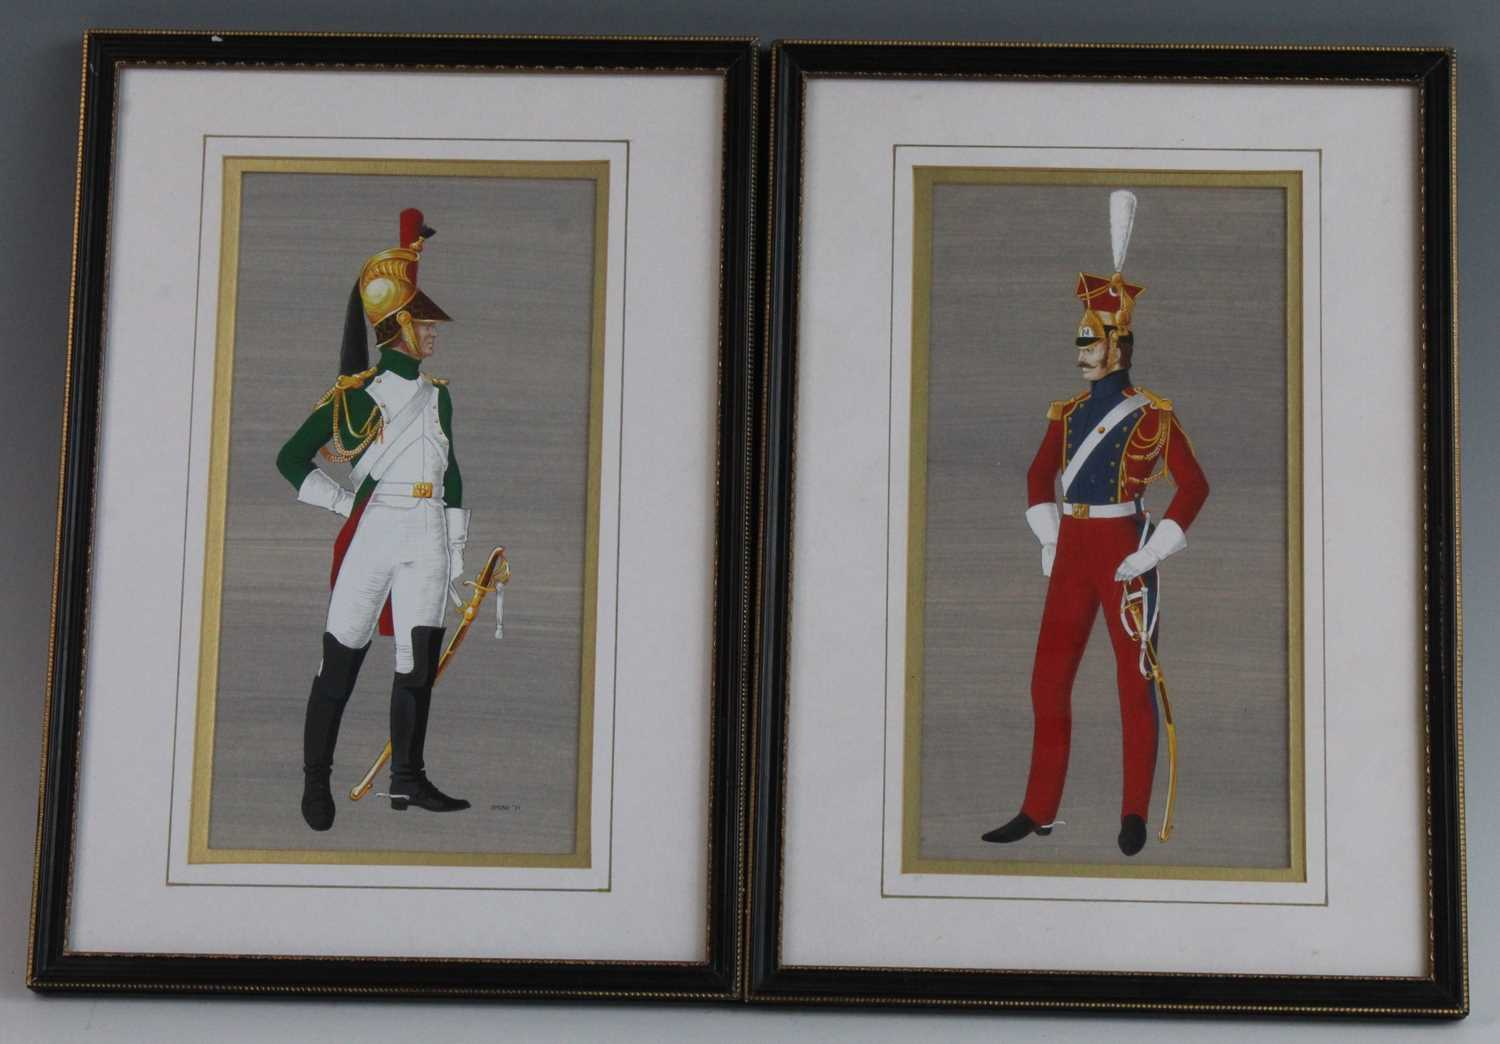 Spear, (20th century), British Officer of the Napoleonic Wars mounted on horseback, gouache, - Image 4 of 4